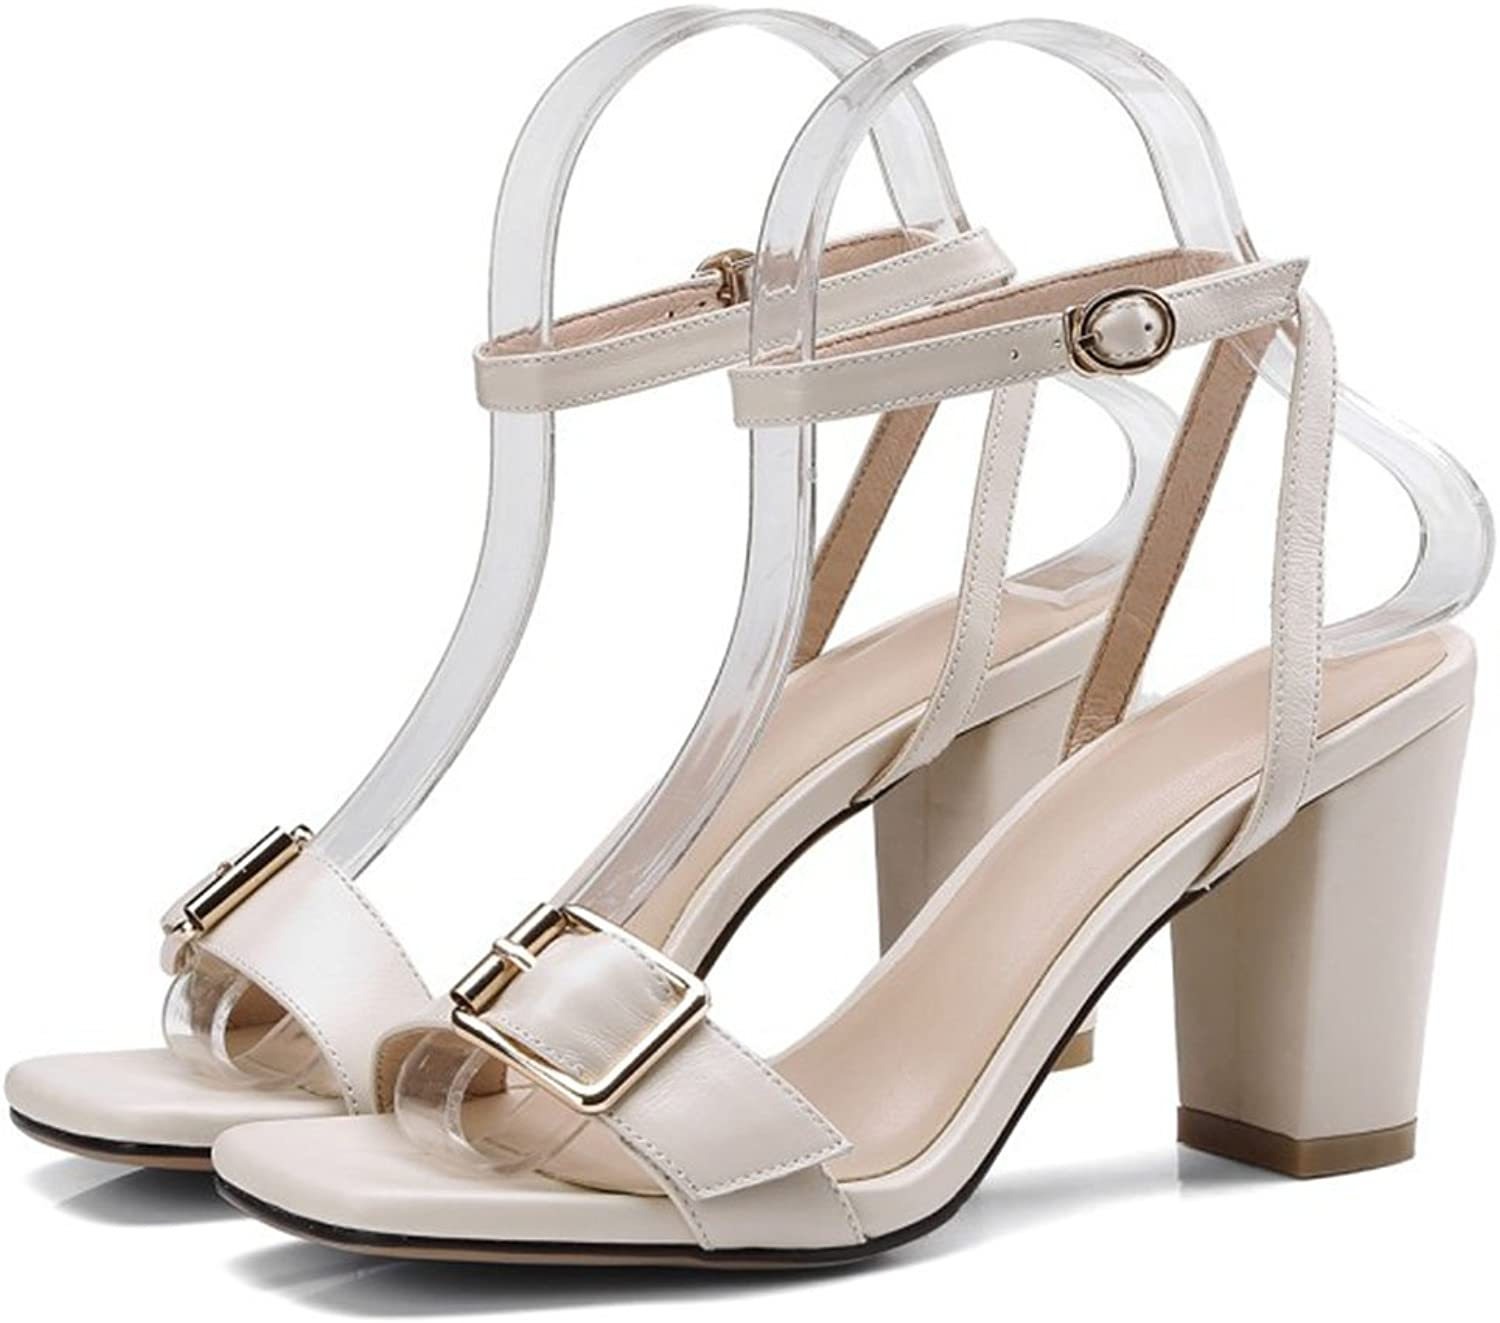 LZWSMGS Women's Open Toe Sandals One Buckle with High Heels Fashion Thick with High Heel Roman shoes Work Professional shoes Ladies Sandals (color   Creamy-White, Size   37 EU)